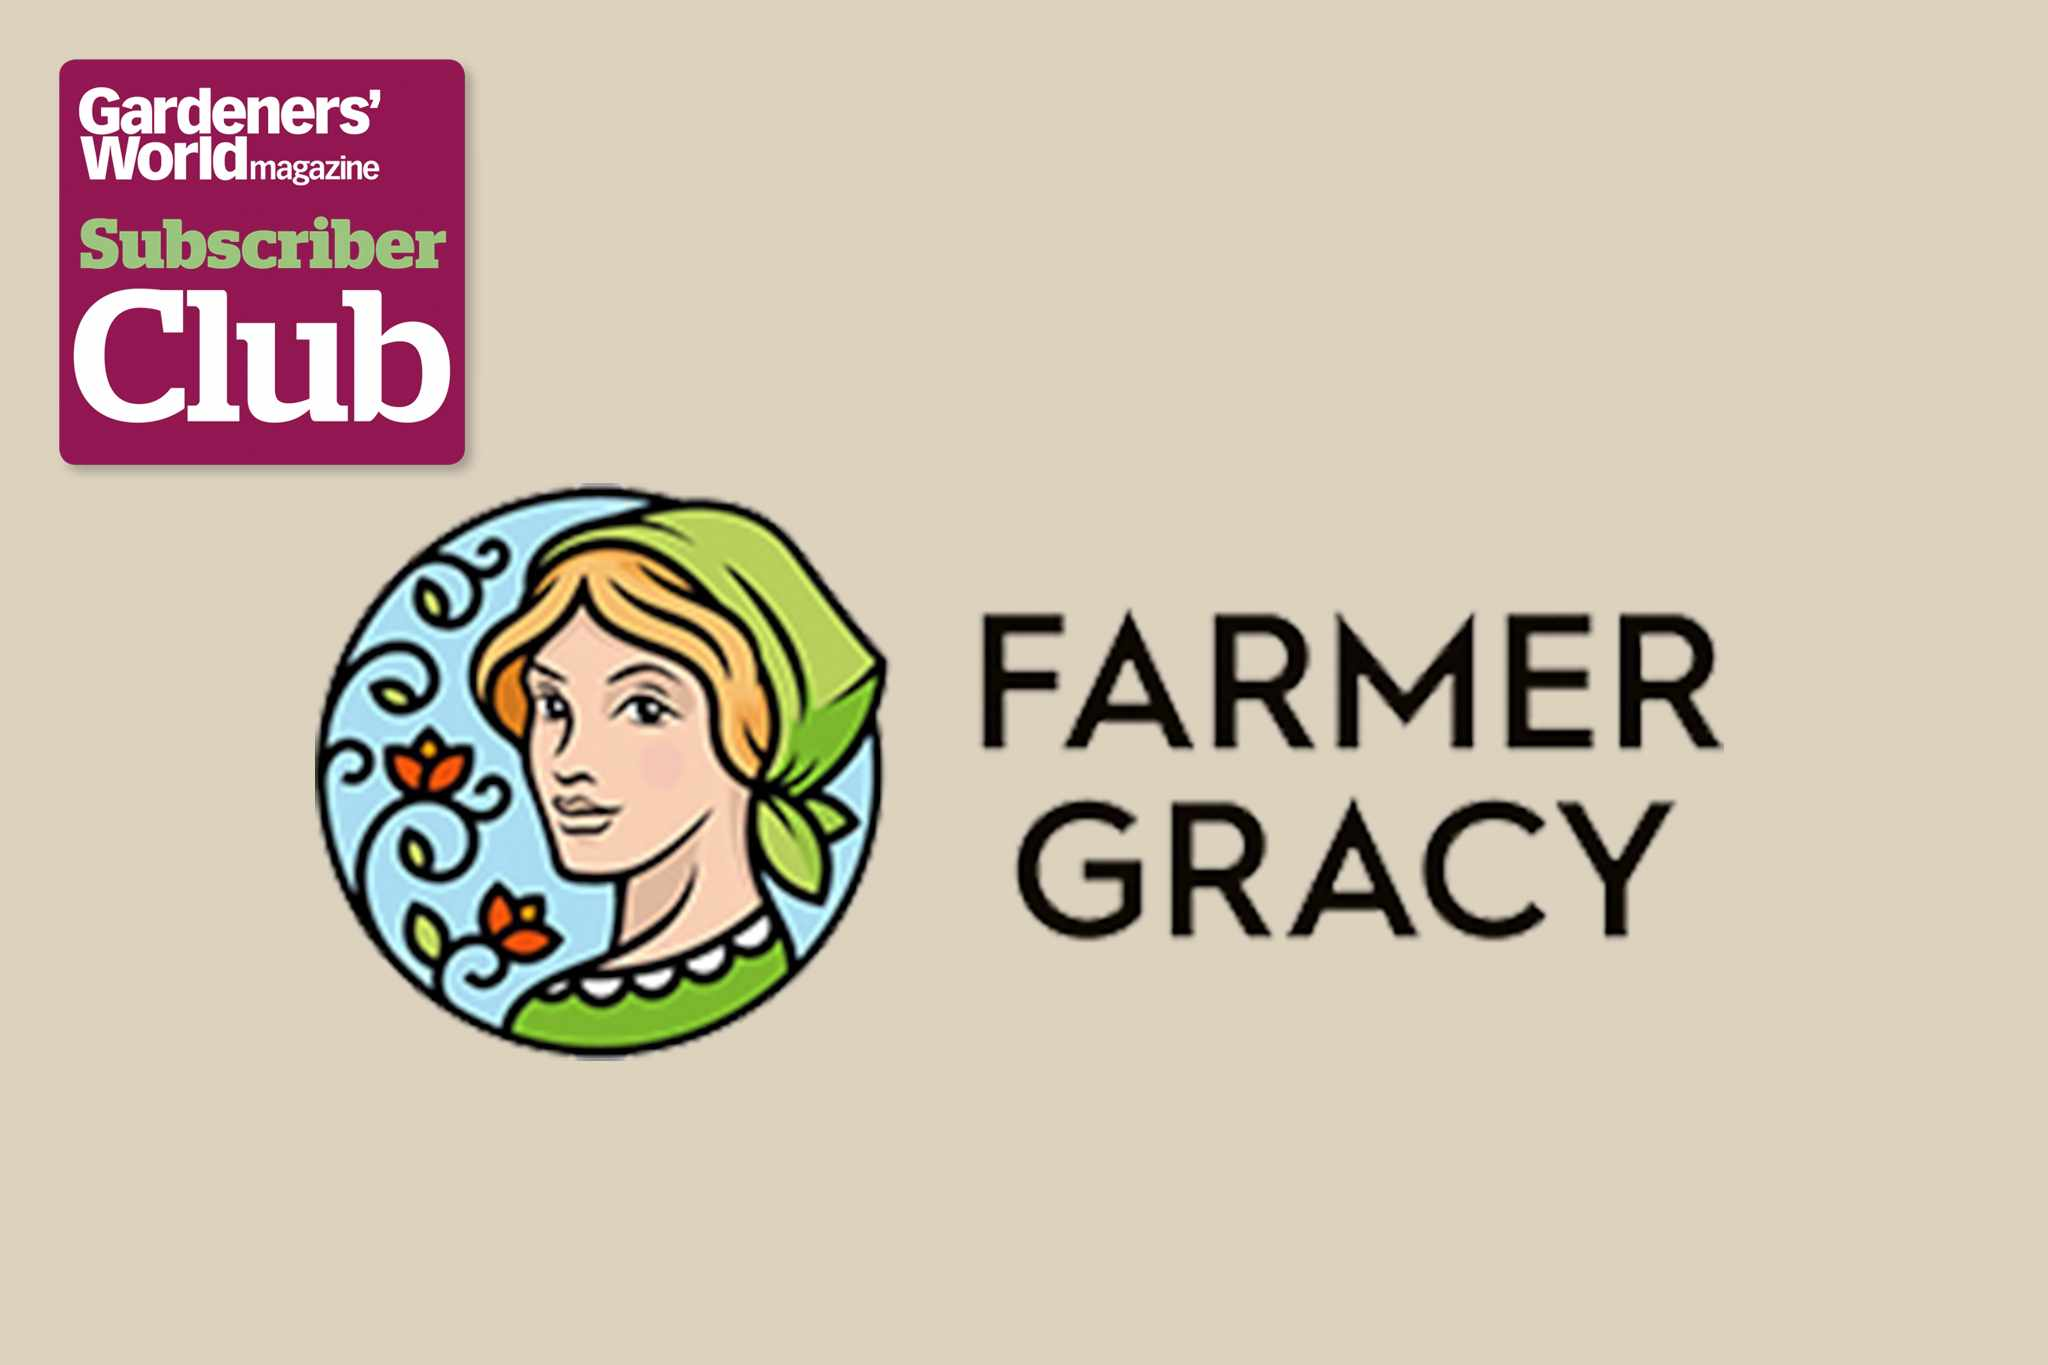 2048x1365-subscriber-club-10-per-cent-farmer-gracy